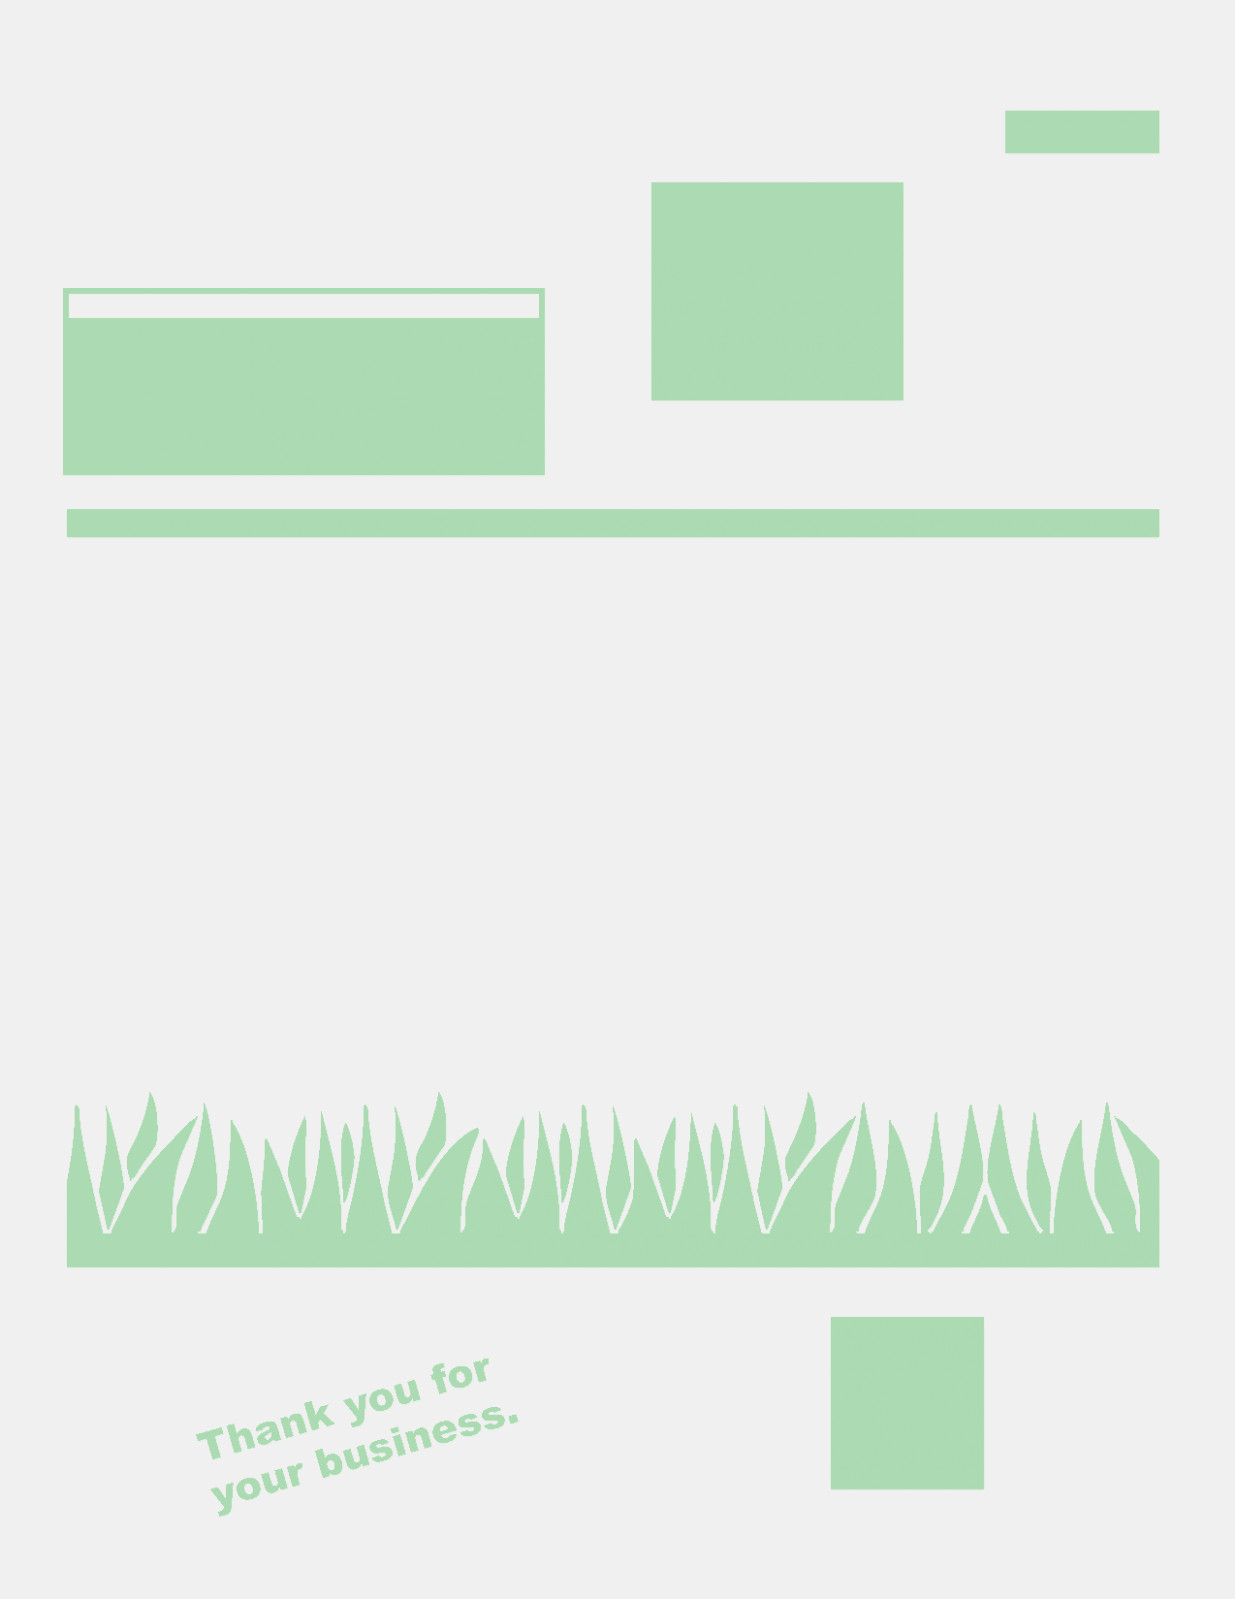 Lawn Care Invoice Templates Business Receipt Template New Of To Lawn Care Invoice Template